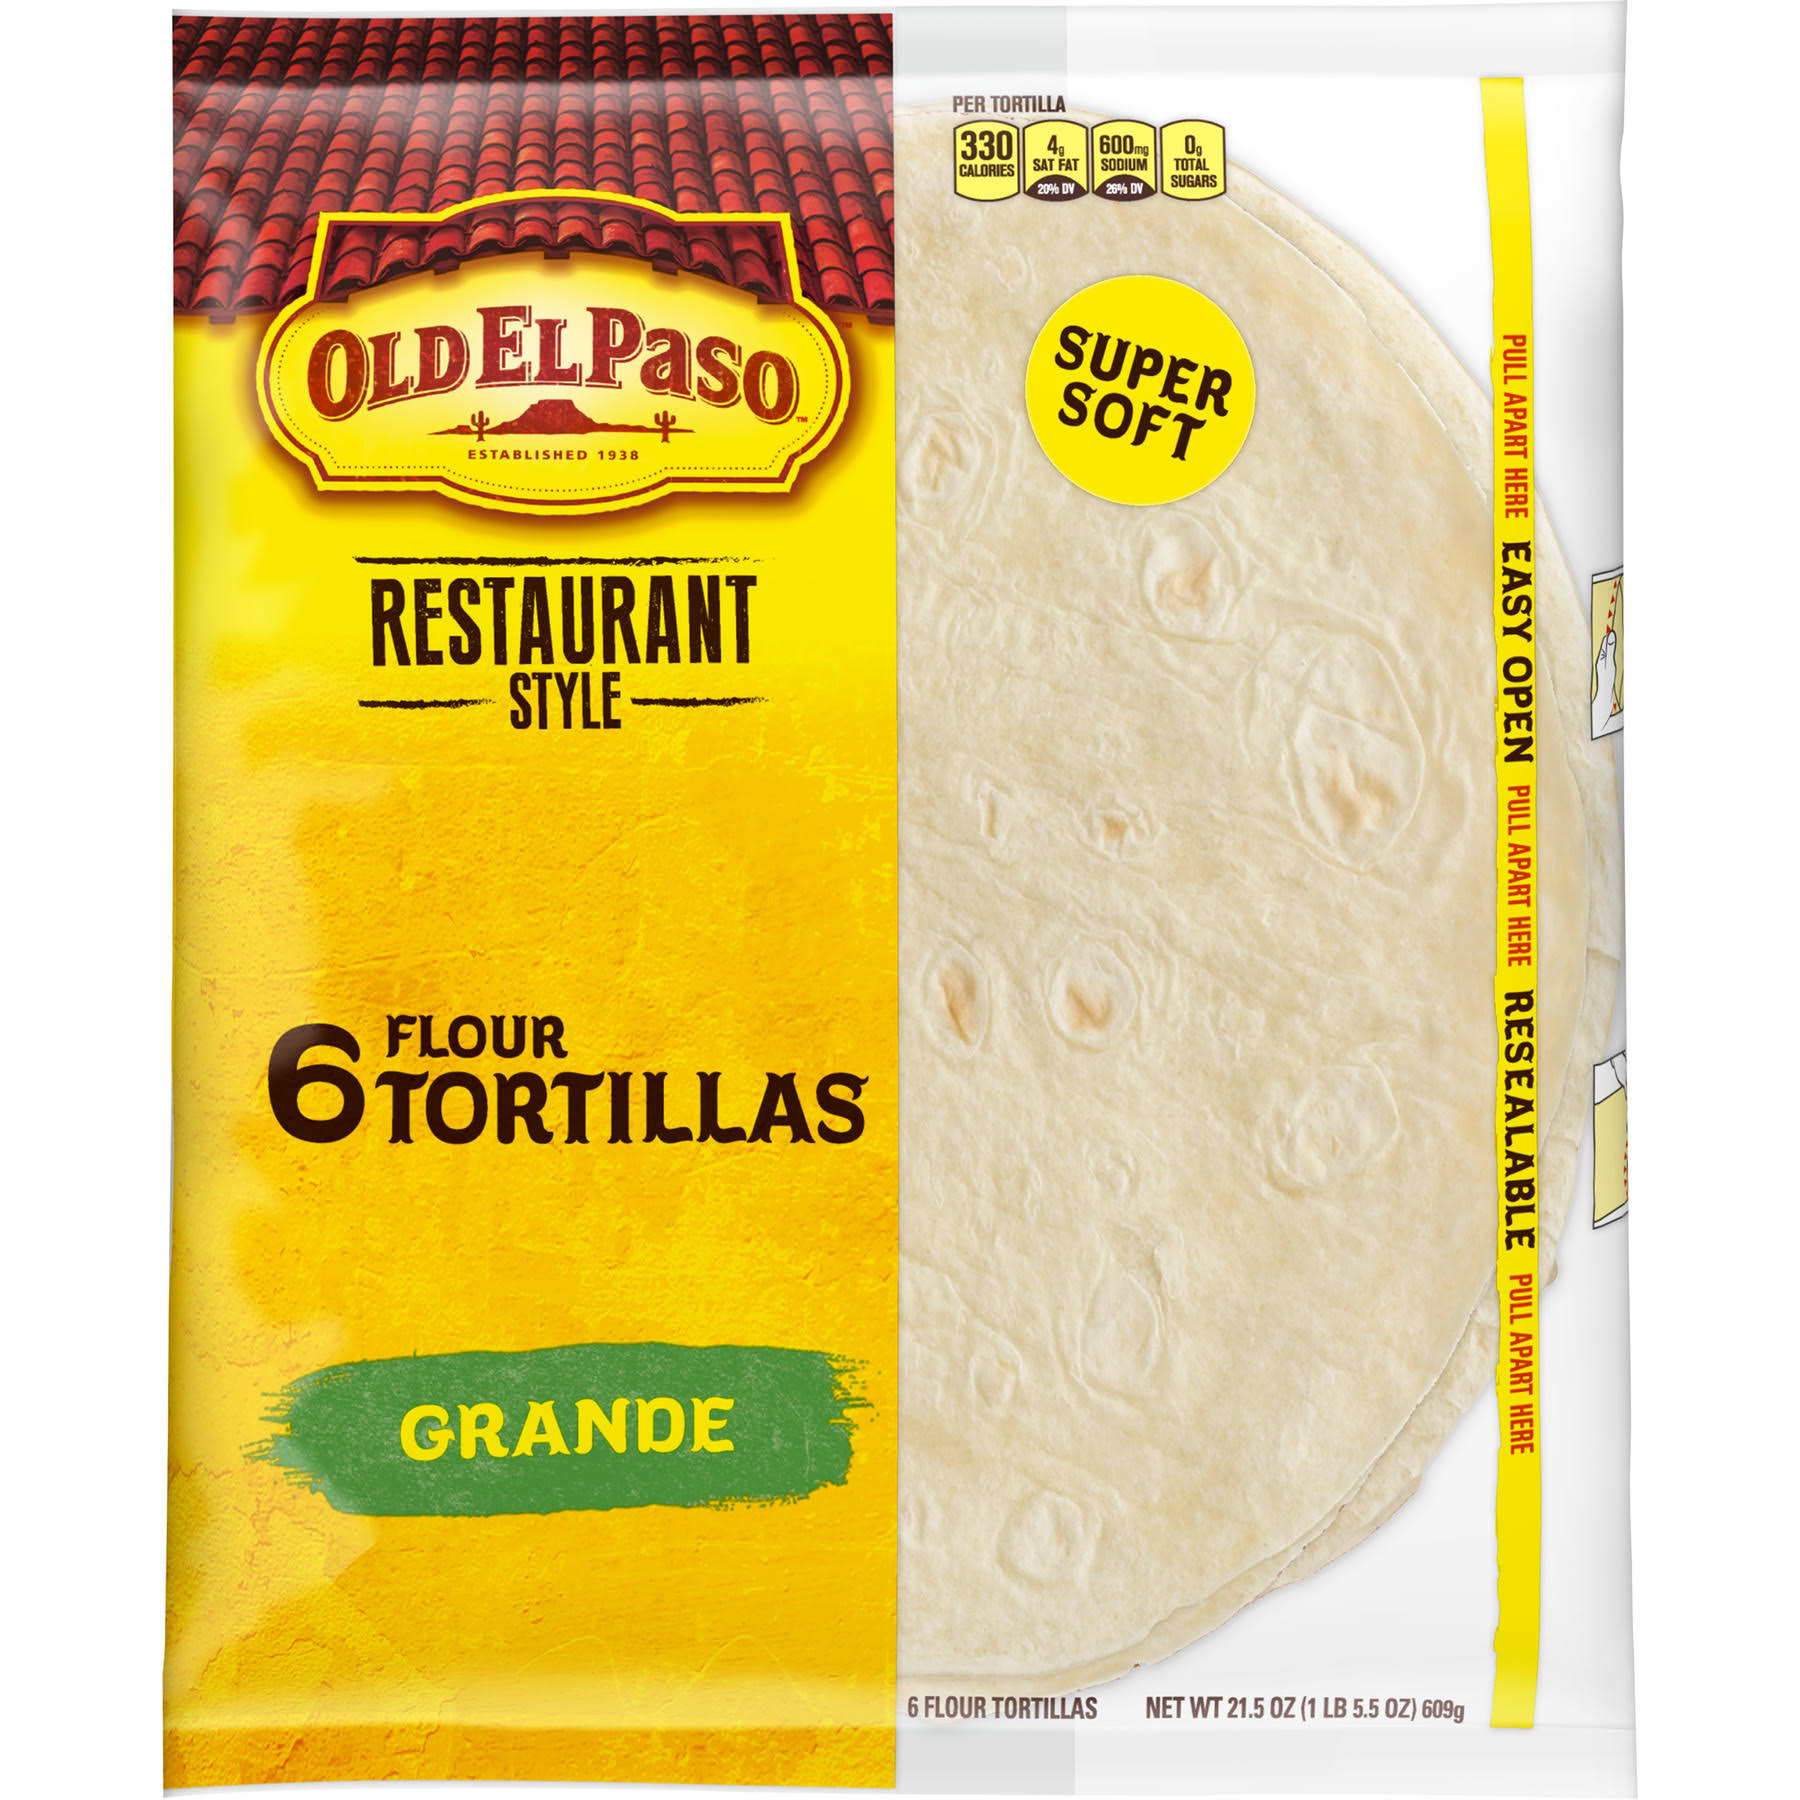 Old El Paso Tortillas, Grande, Super Soft, Restaurant Style - 6 tortillas, 21.5 oz